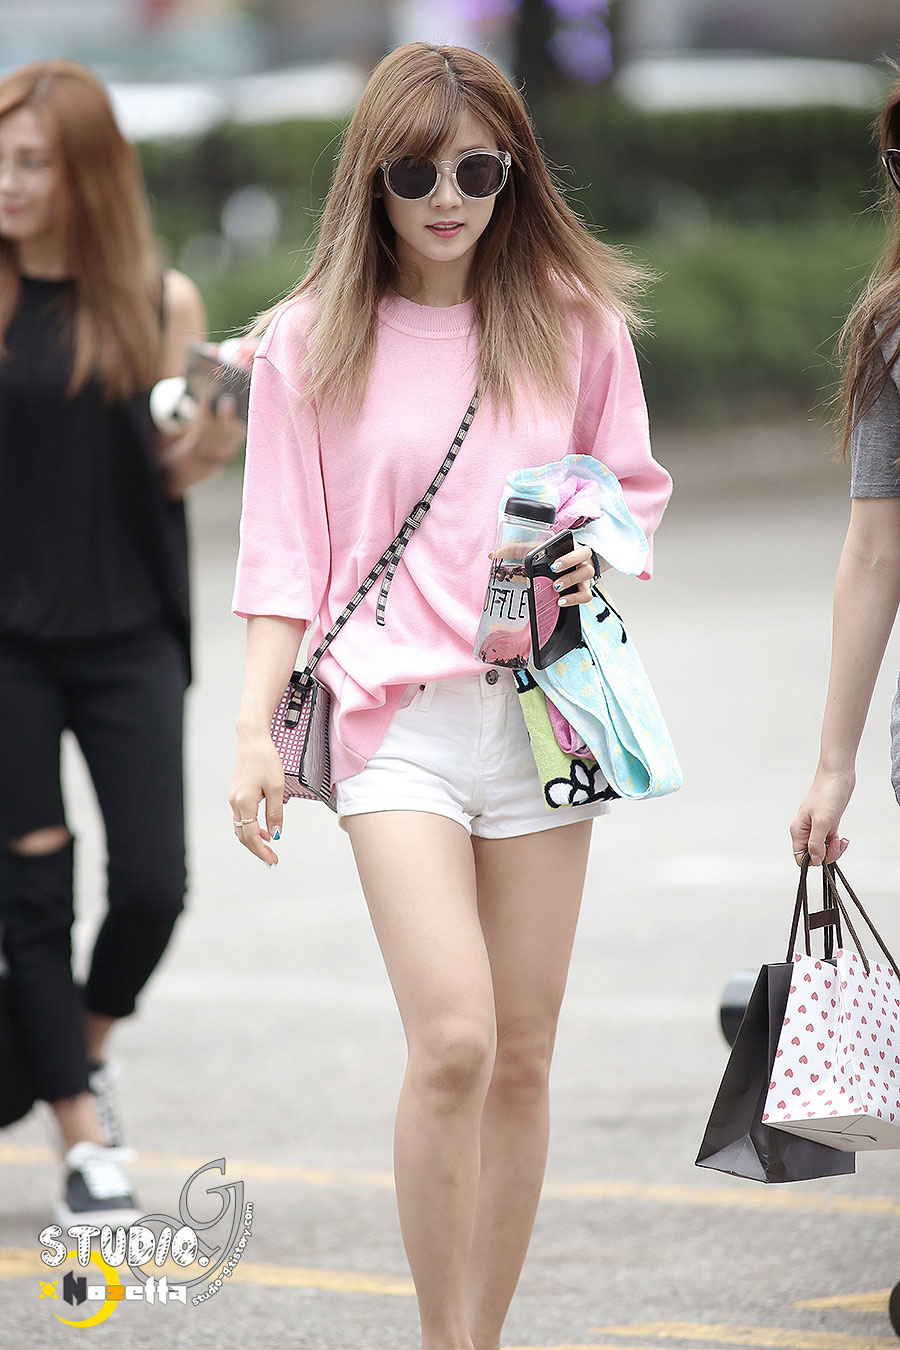 Apink Chorong KBS Music Bank commute